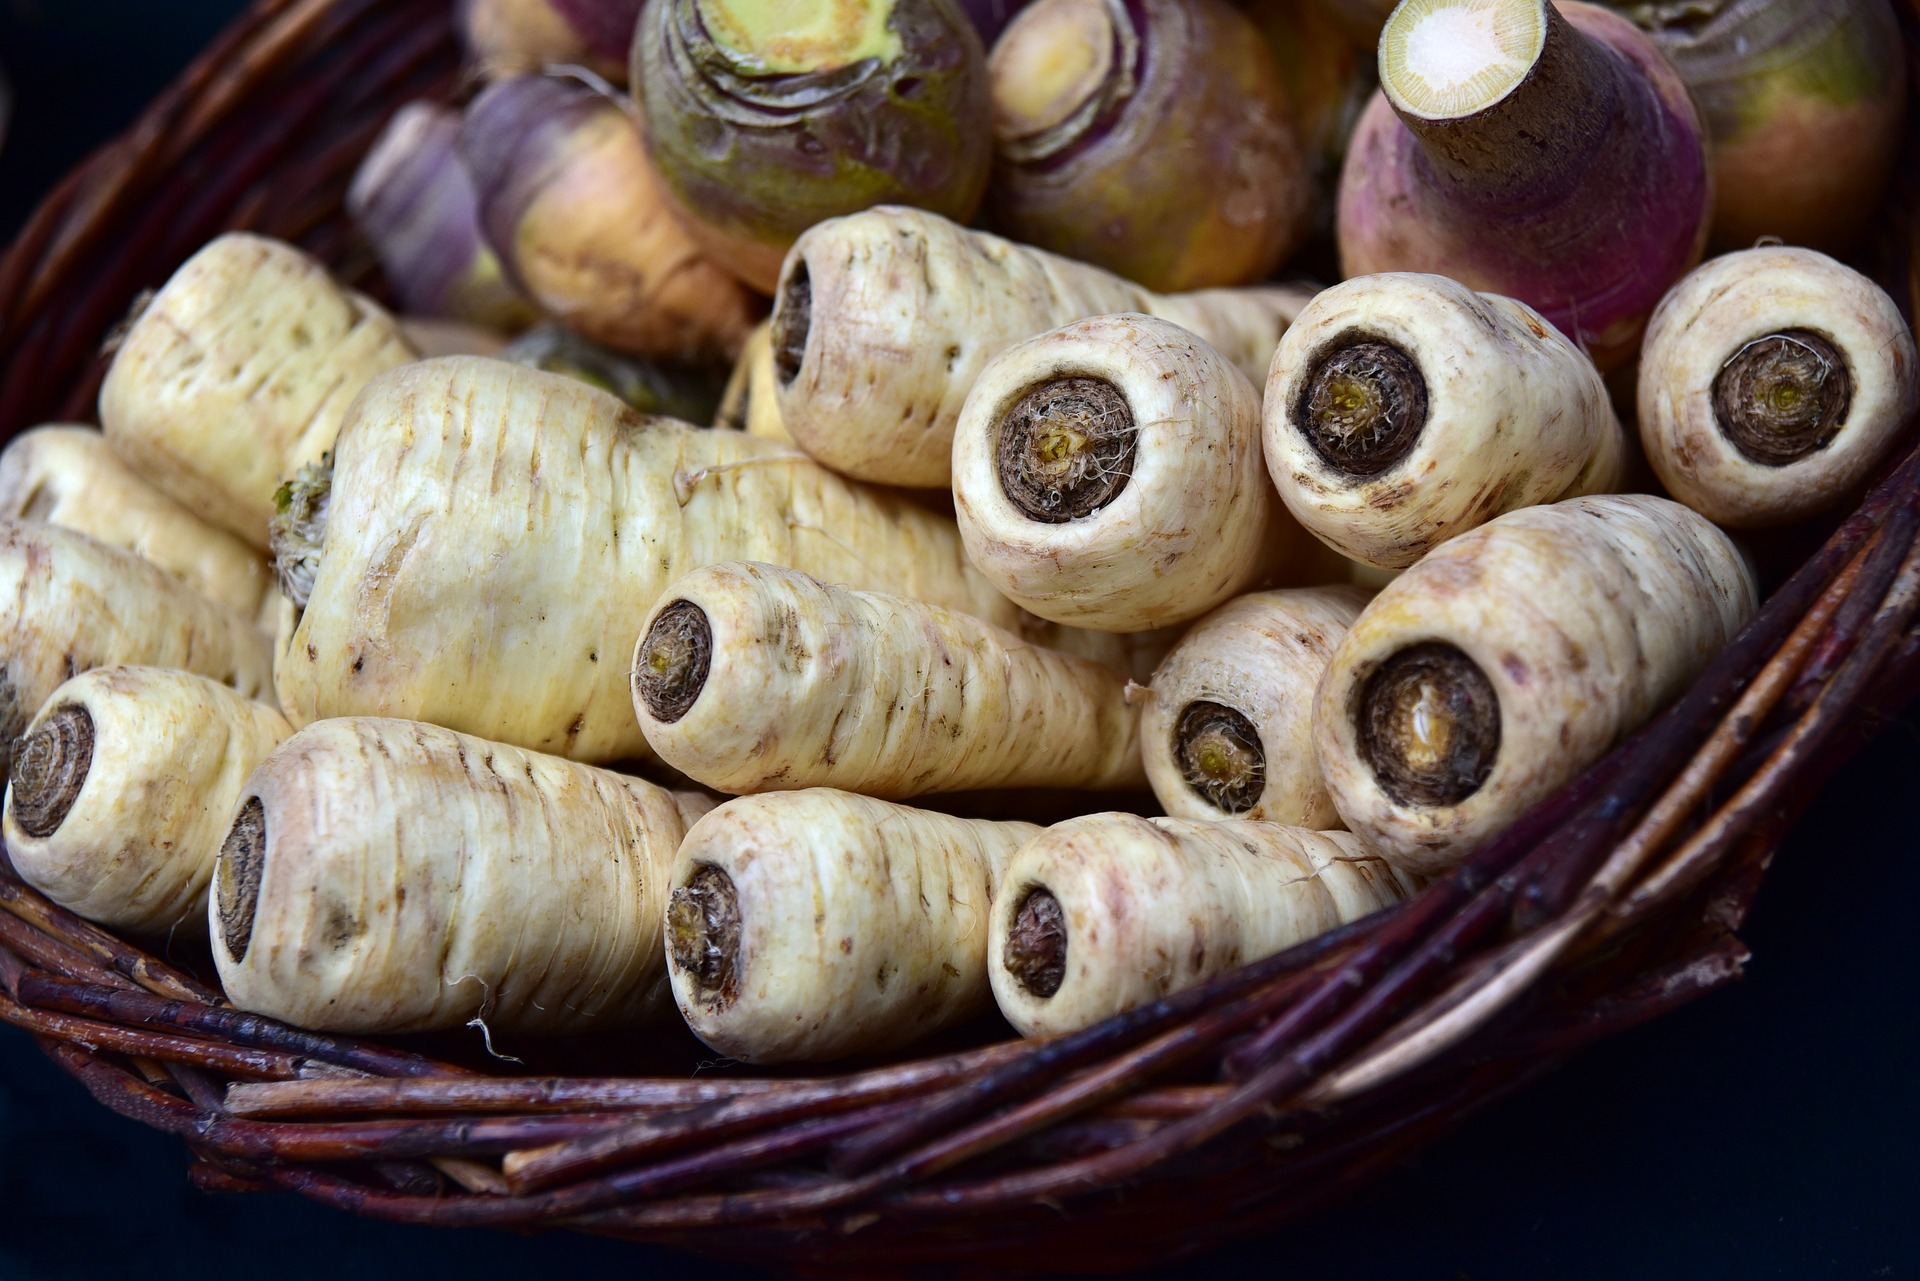 Add Parsnips to Your Grocery List!